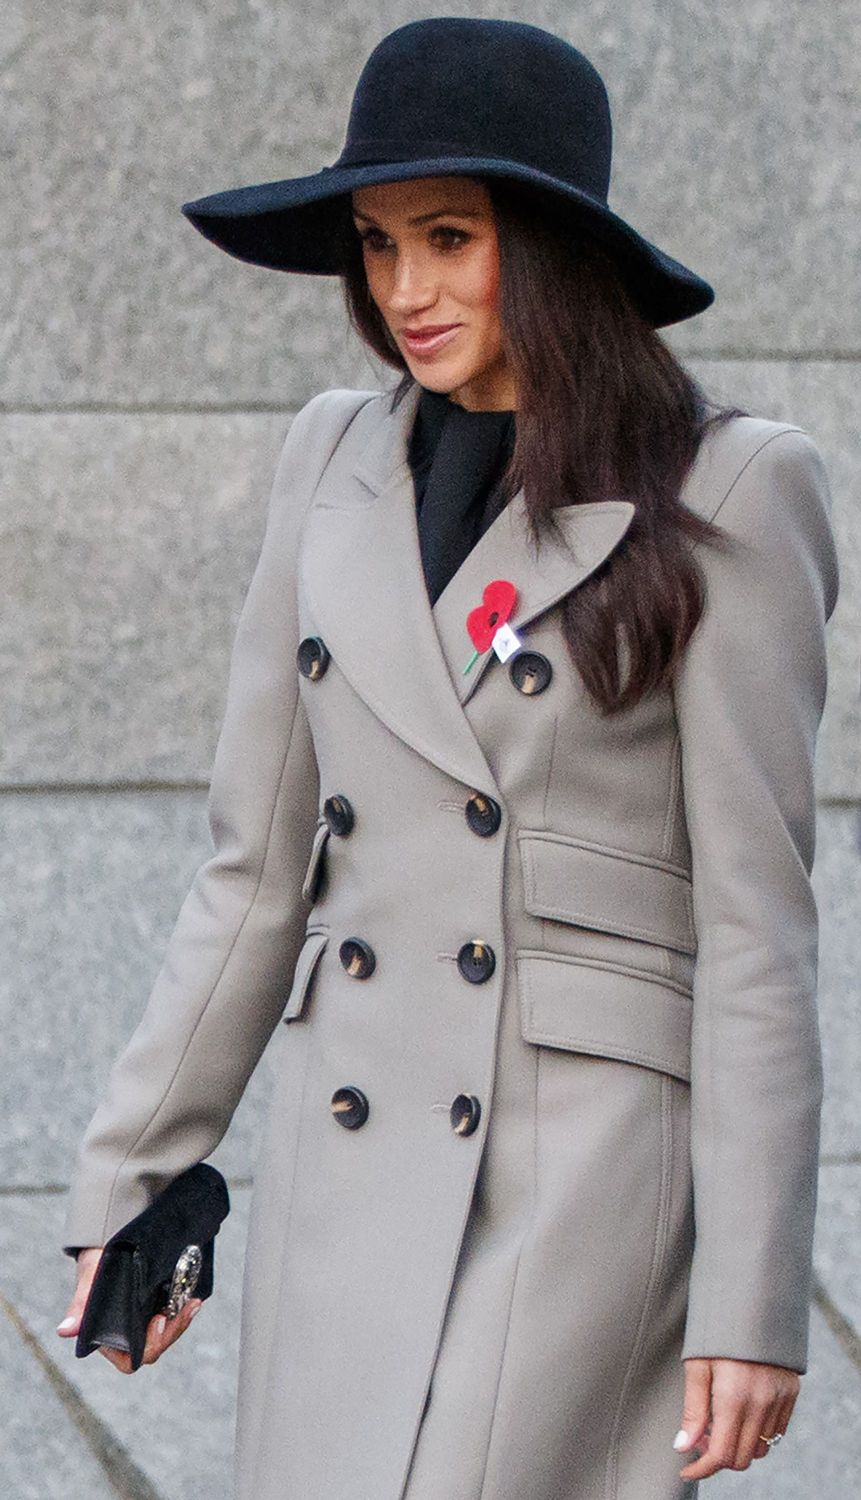 Meghan Markle is absolutely stunning as she attends the Anzac Day Service of Commemoration and Thanksgiving with Prince William and Prince Harry, at Westminster Abbey, London, UK. April 25, 2018 X17online.com USA ONLY